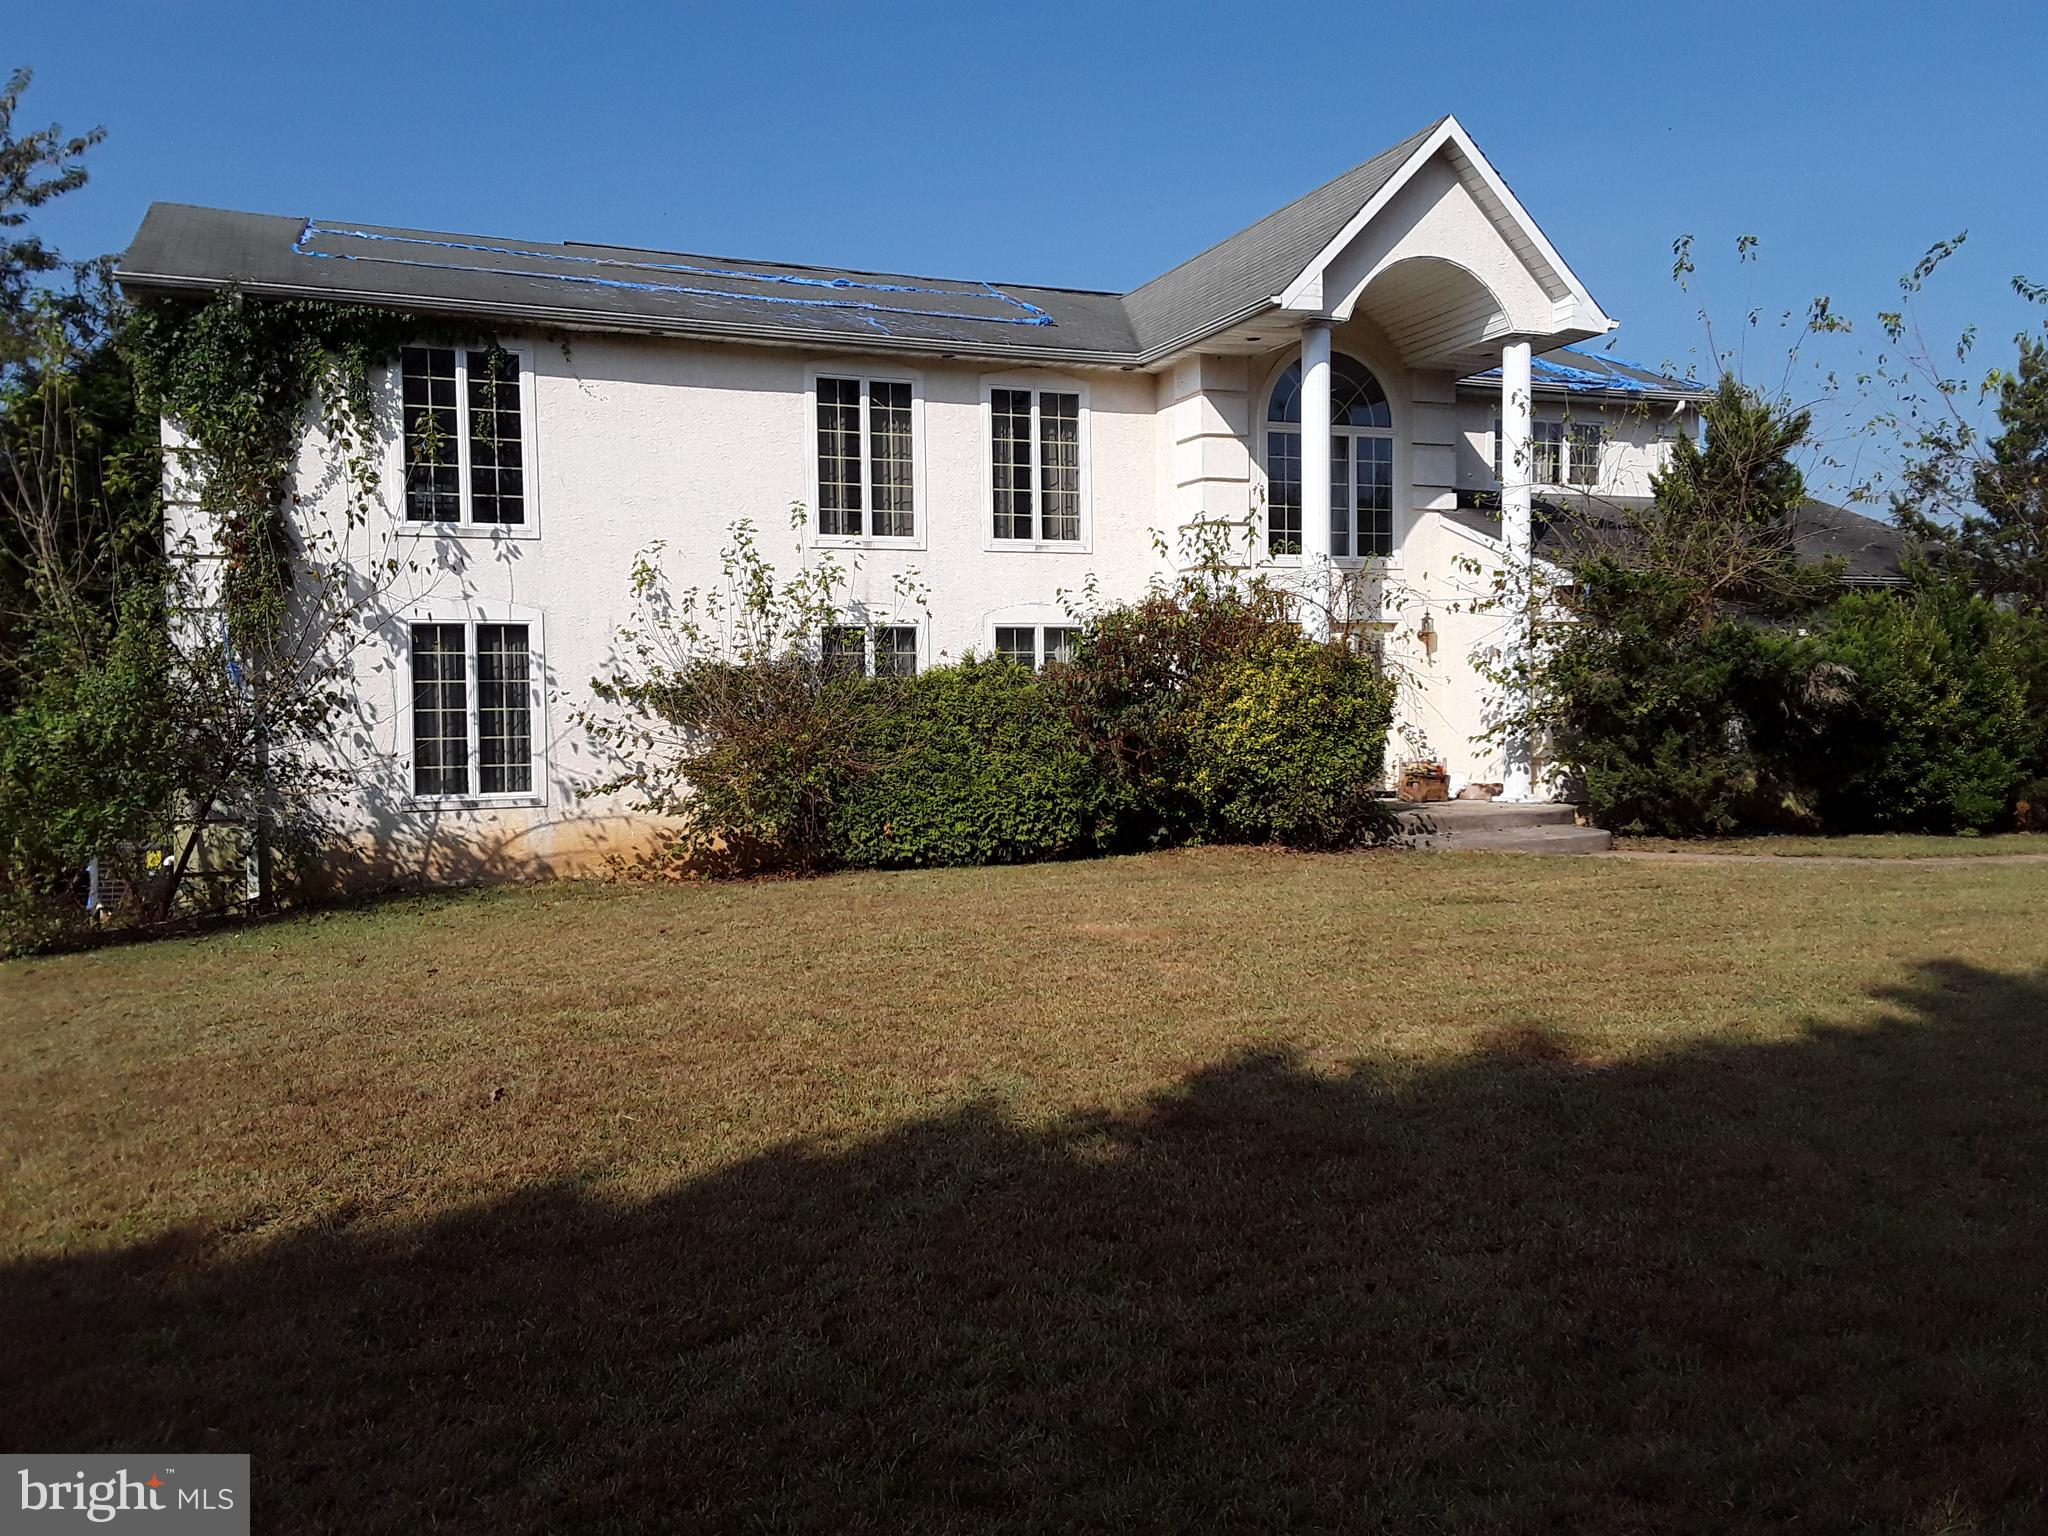 Over 2 acres of countryside in the Strawberry Hill development 10 minutes from Middletown. This Cont